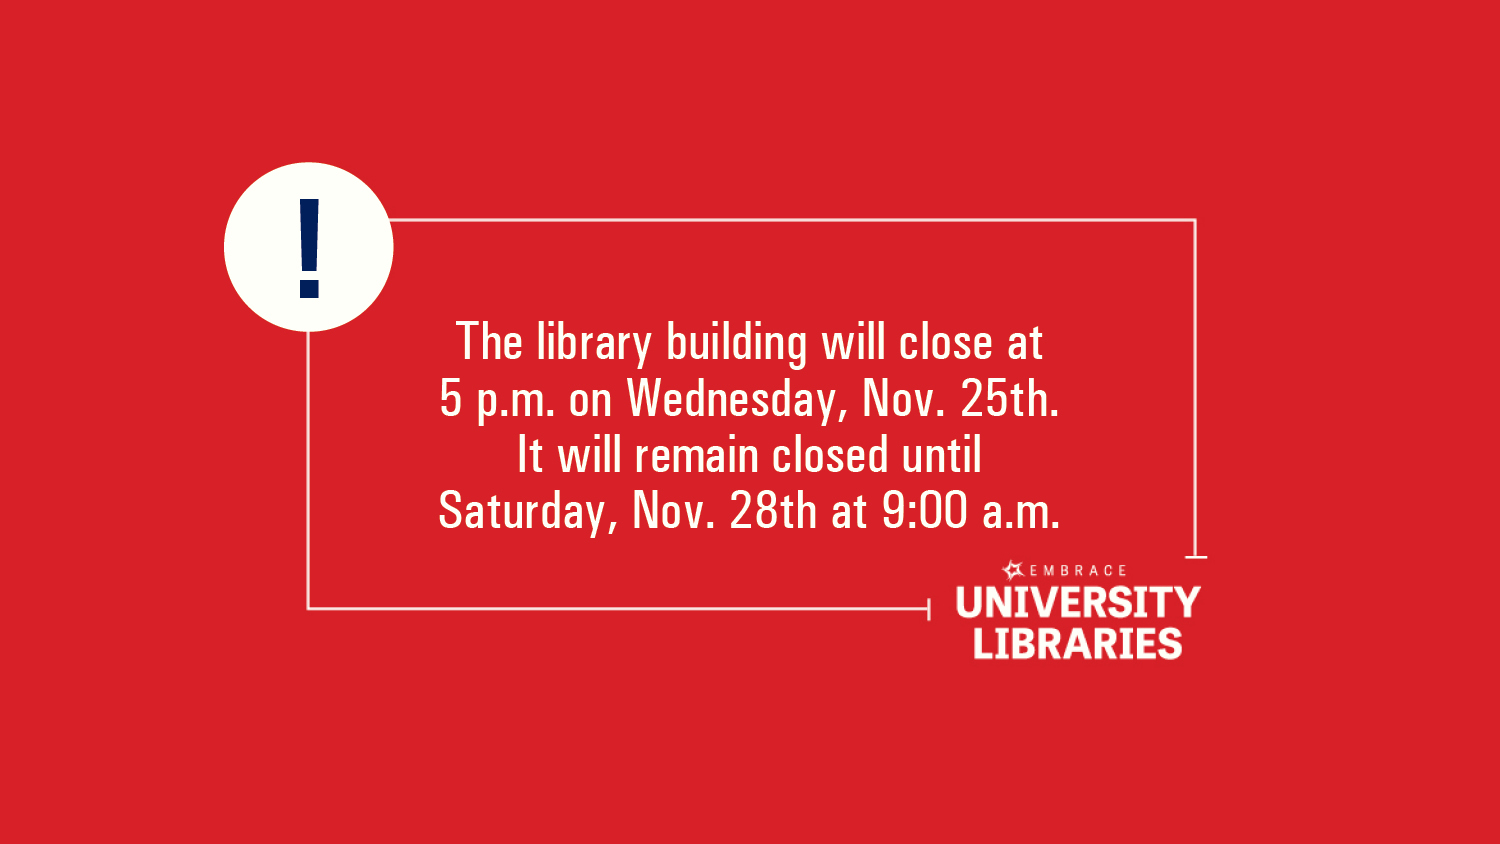 Show more about The library will close at 5 p.m. on Wednesday, Nov. 25th. It will remain closed until Saturday, Nov. 28th at 9:00 a.m.